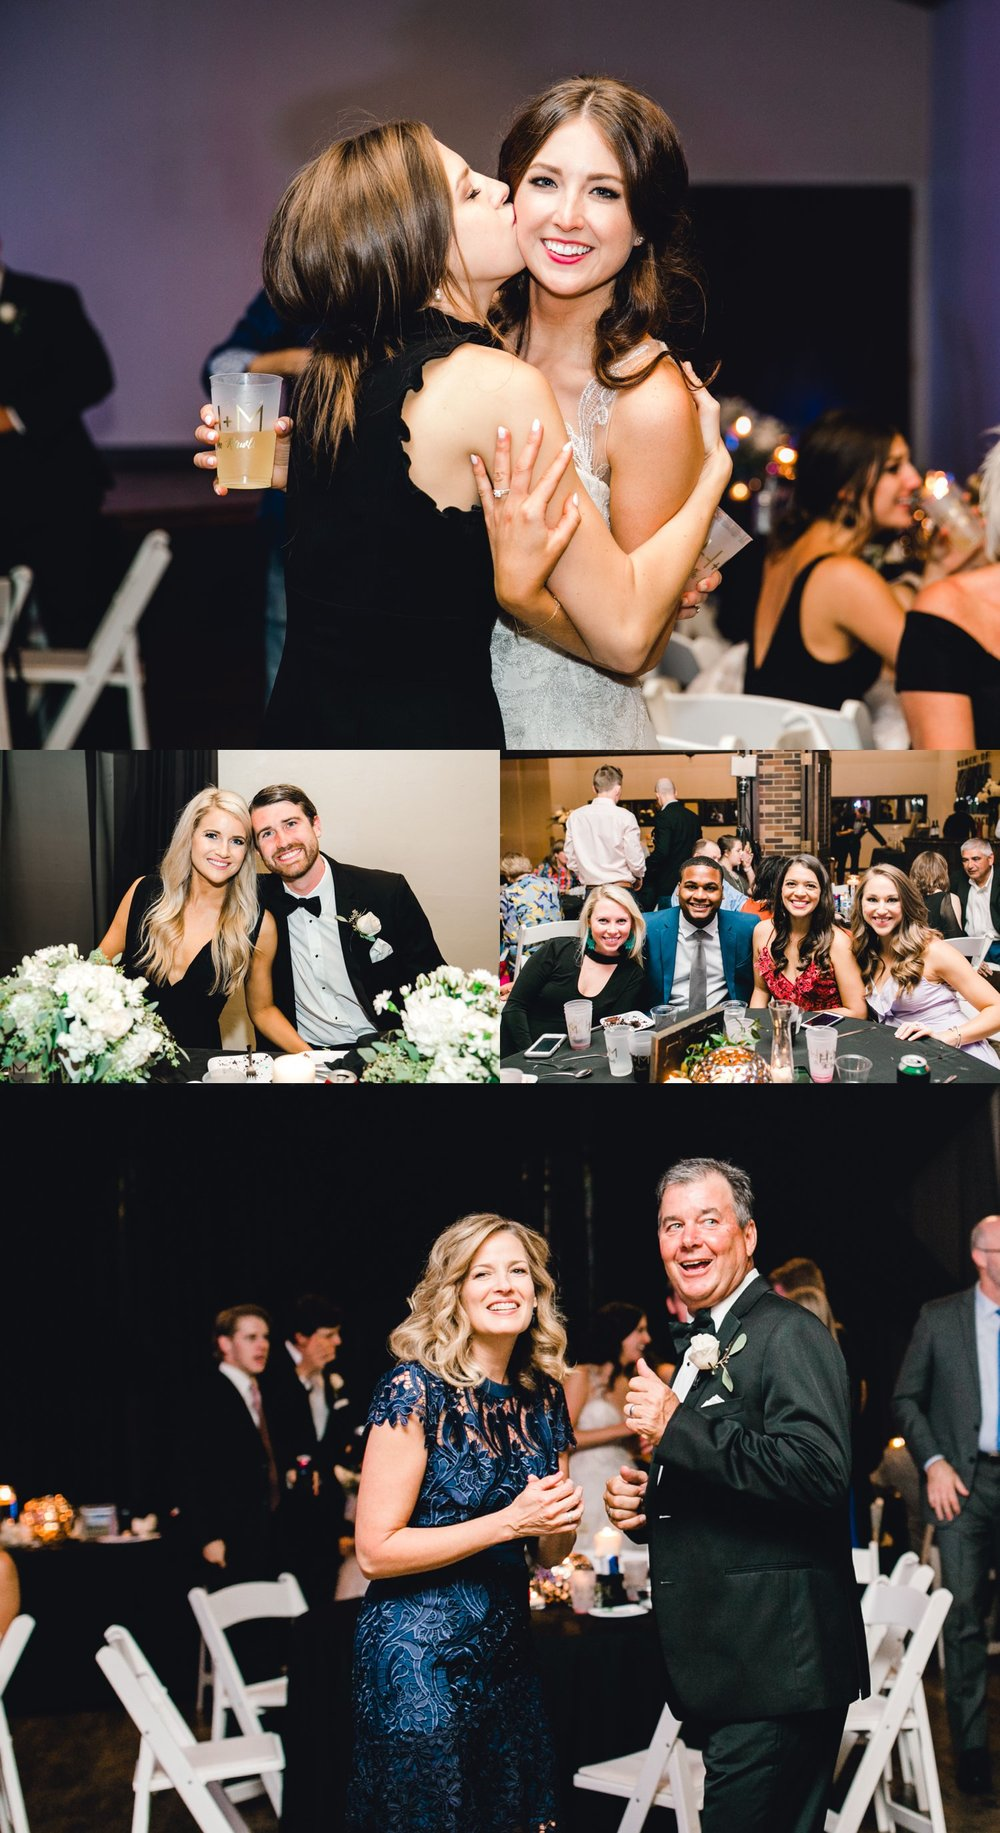 Hunter_and_Molly_Rawls_ALLEEJ_Lubbock_WEDDING_Legacy_Event_Center_0200.jpg